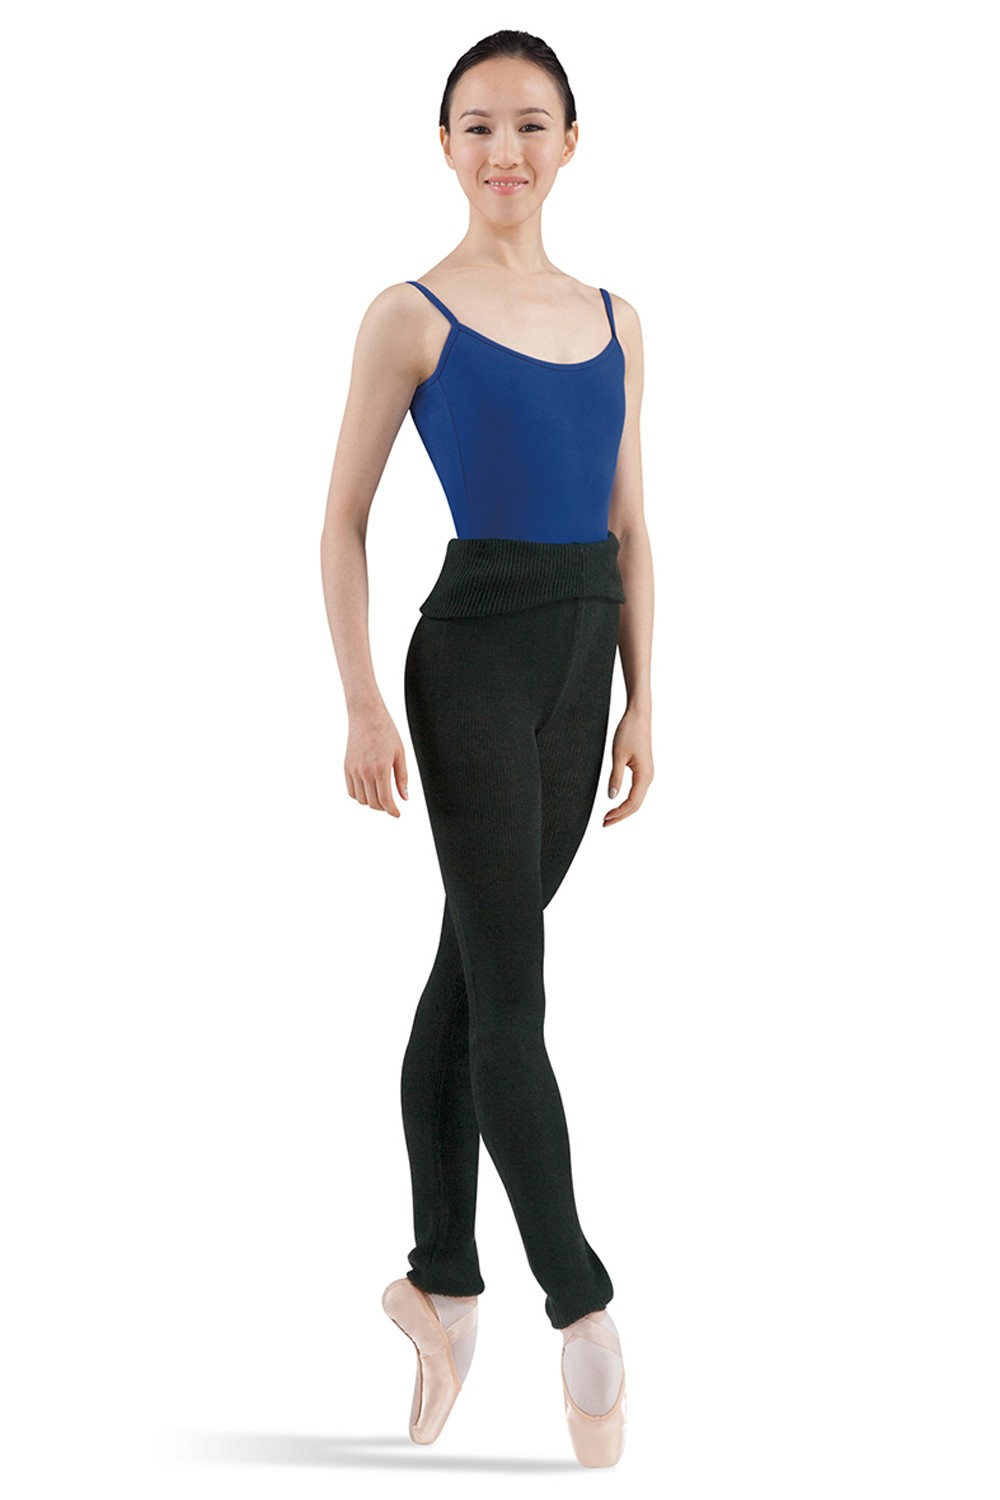 Marcy Women's Dance Pants